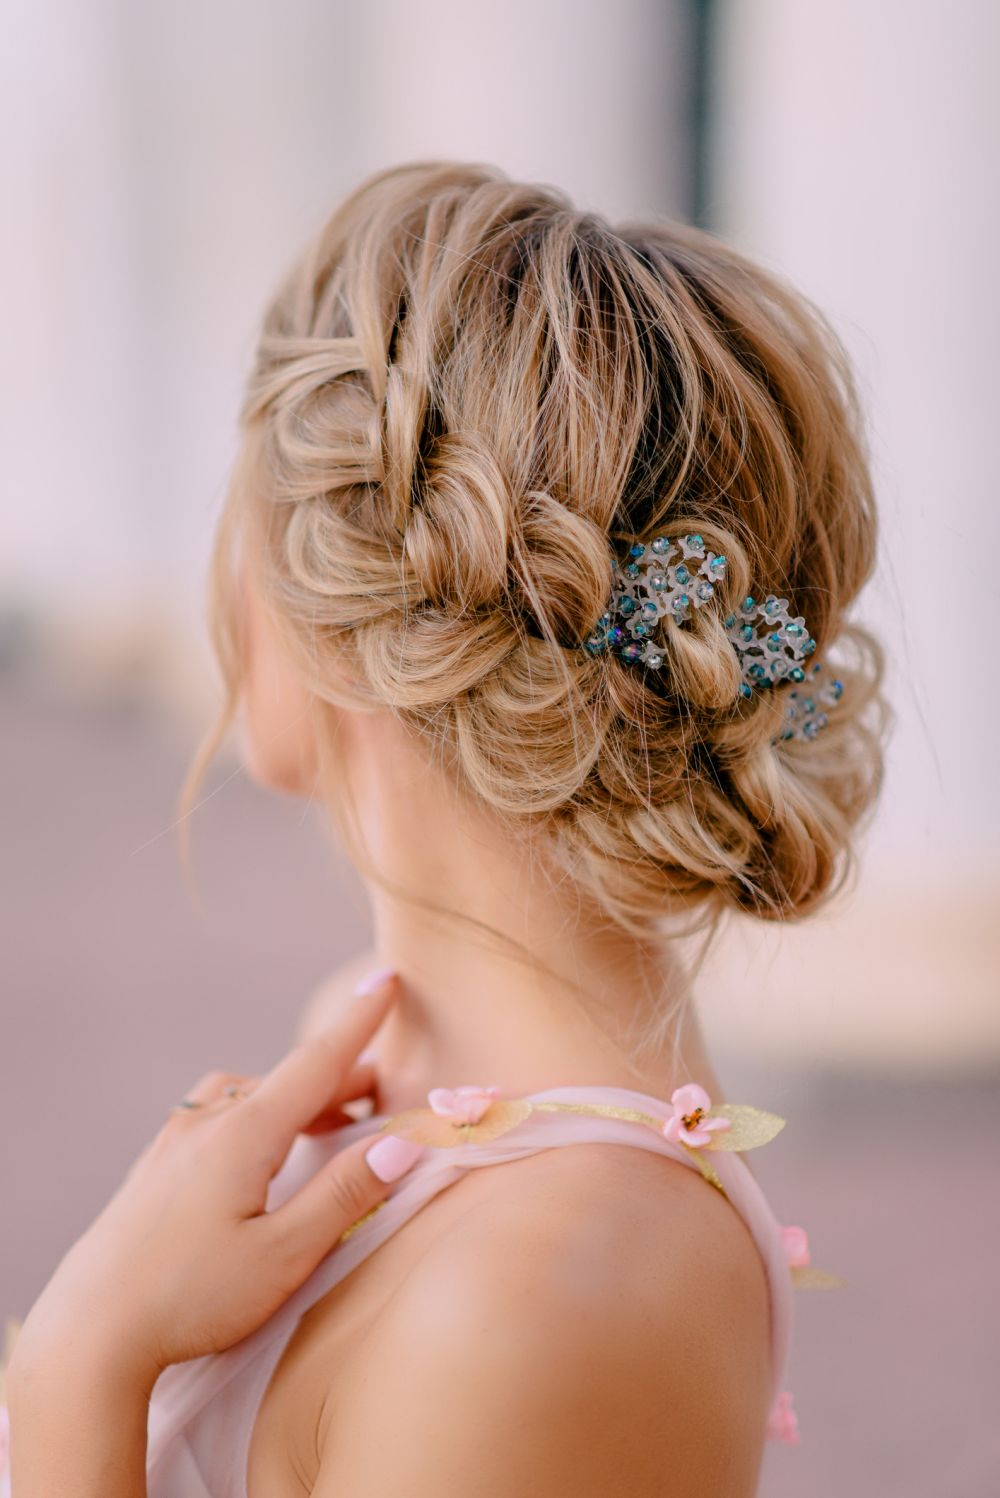 Hairstyle with braided hair